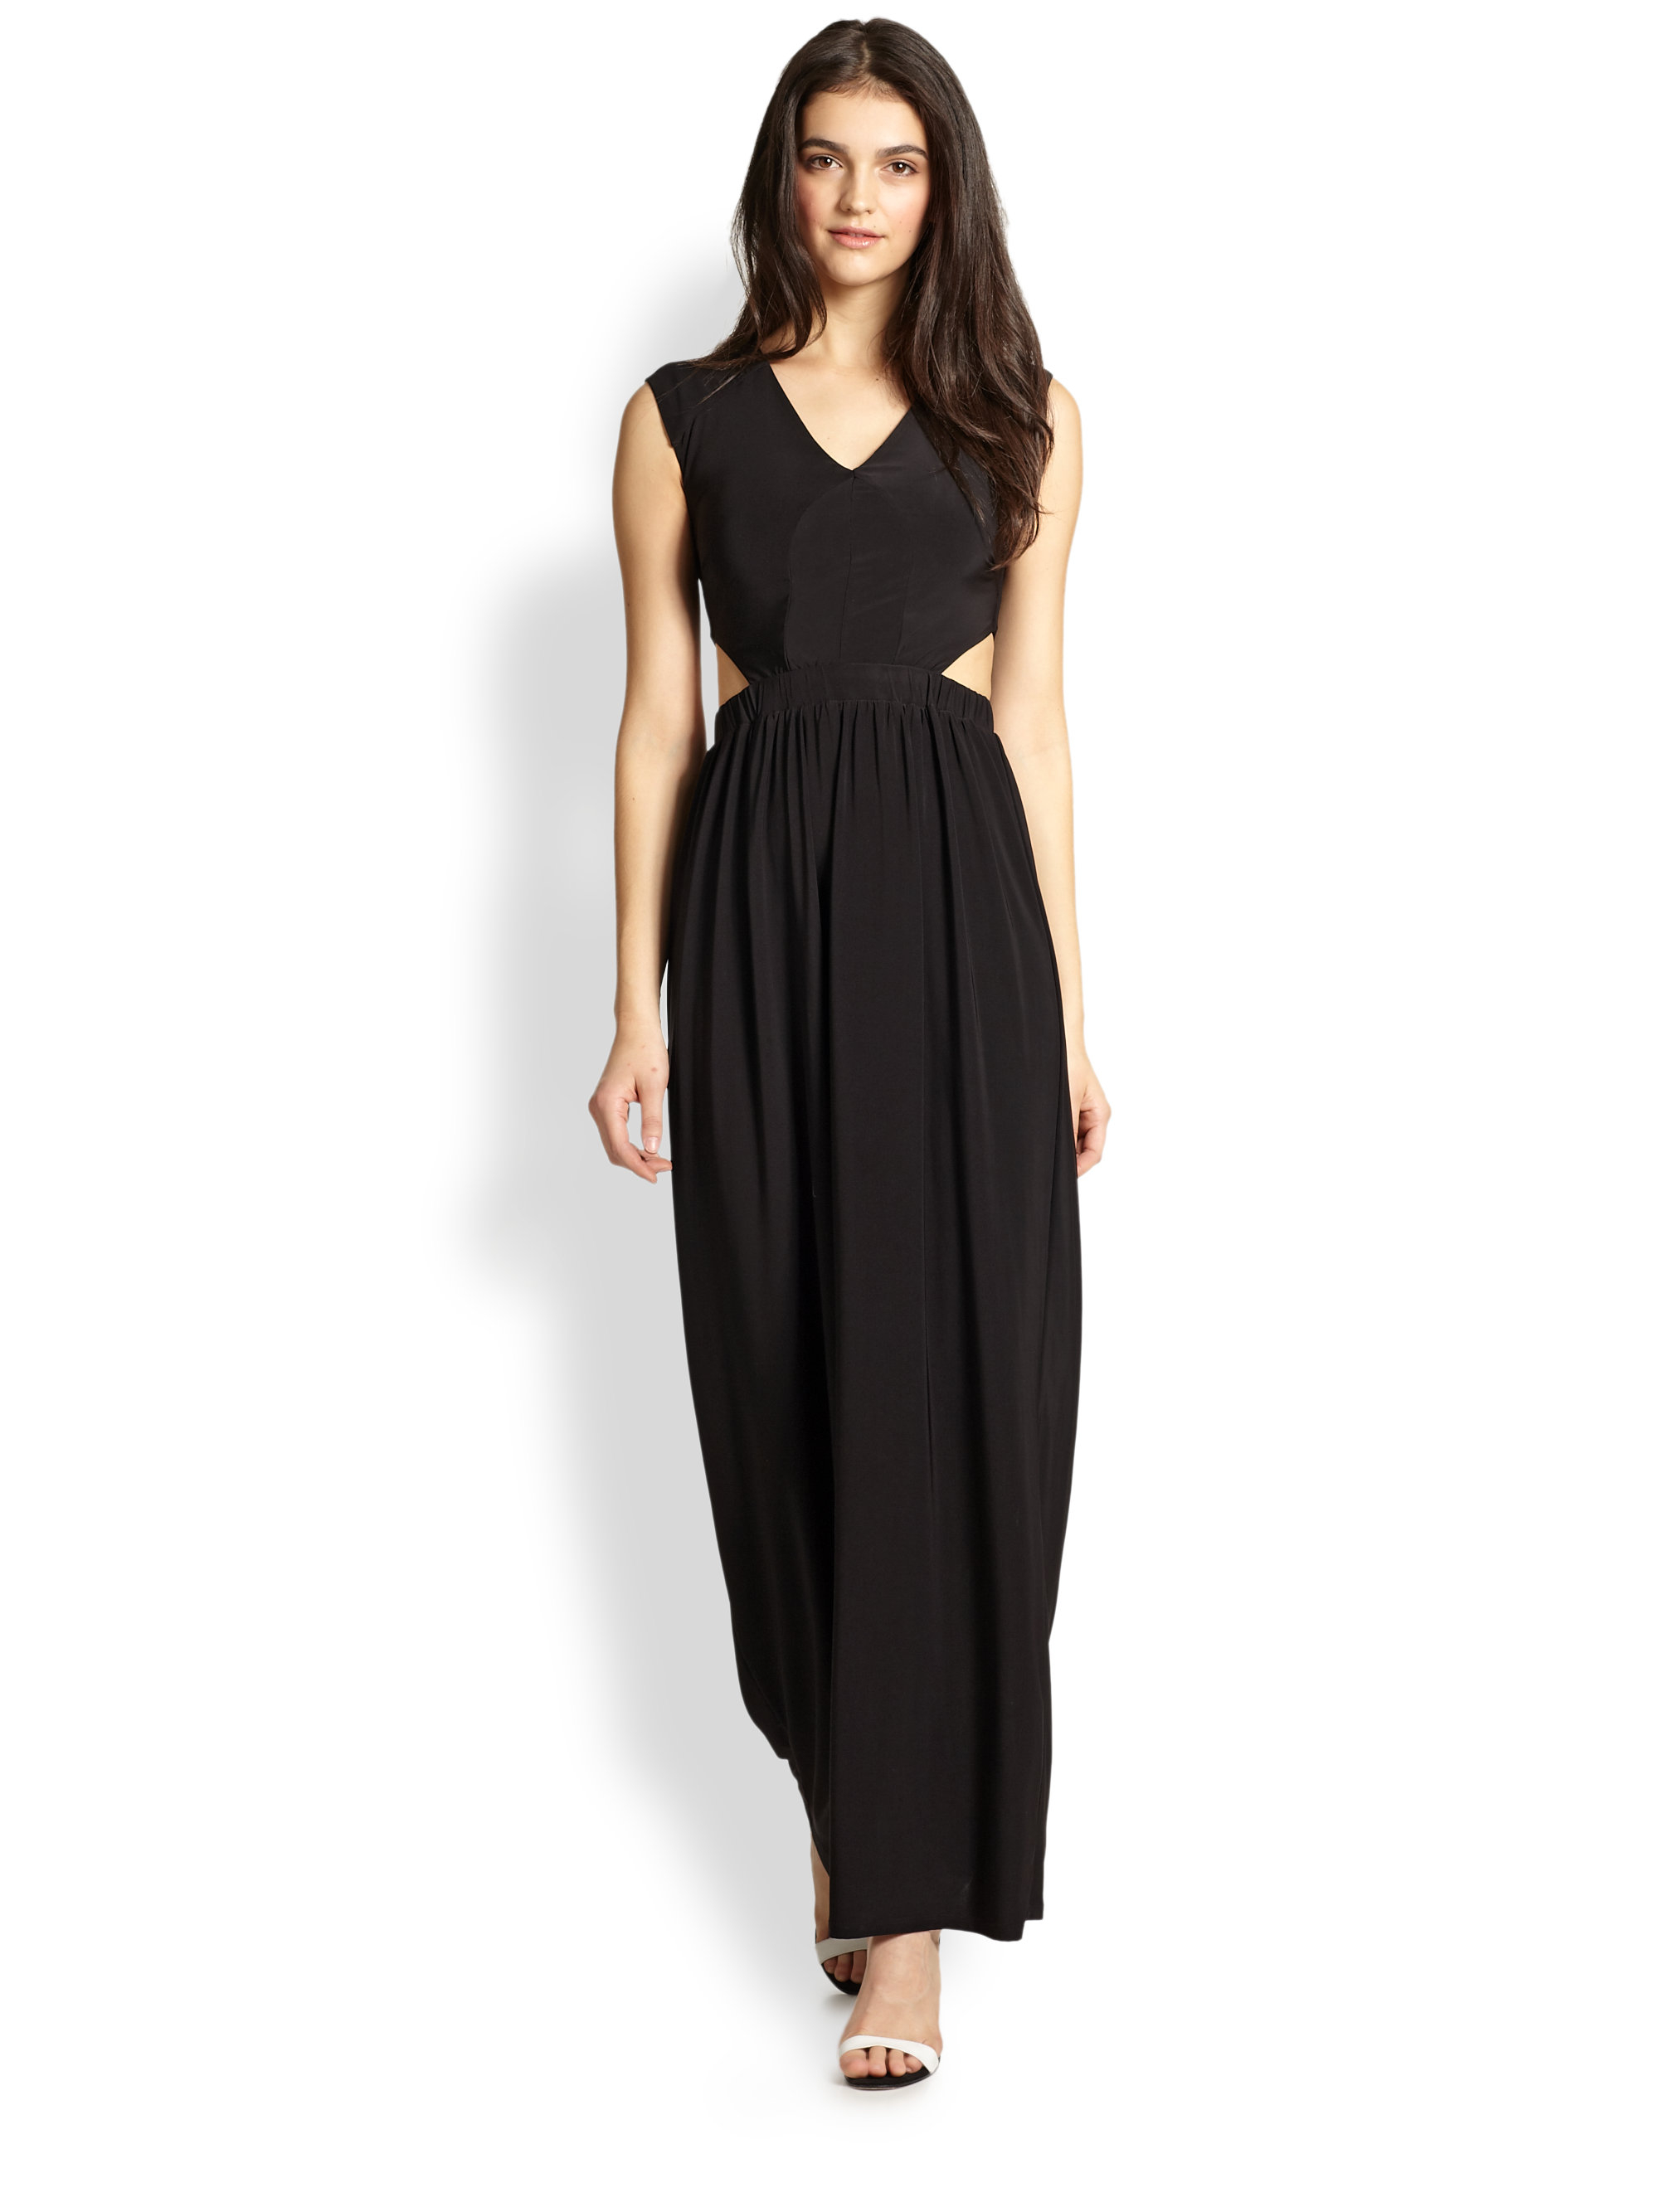 T-bags Cutout-Waist Maxi Dress in Black | Lyst